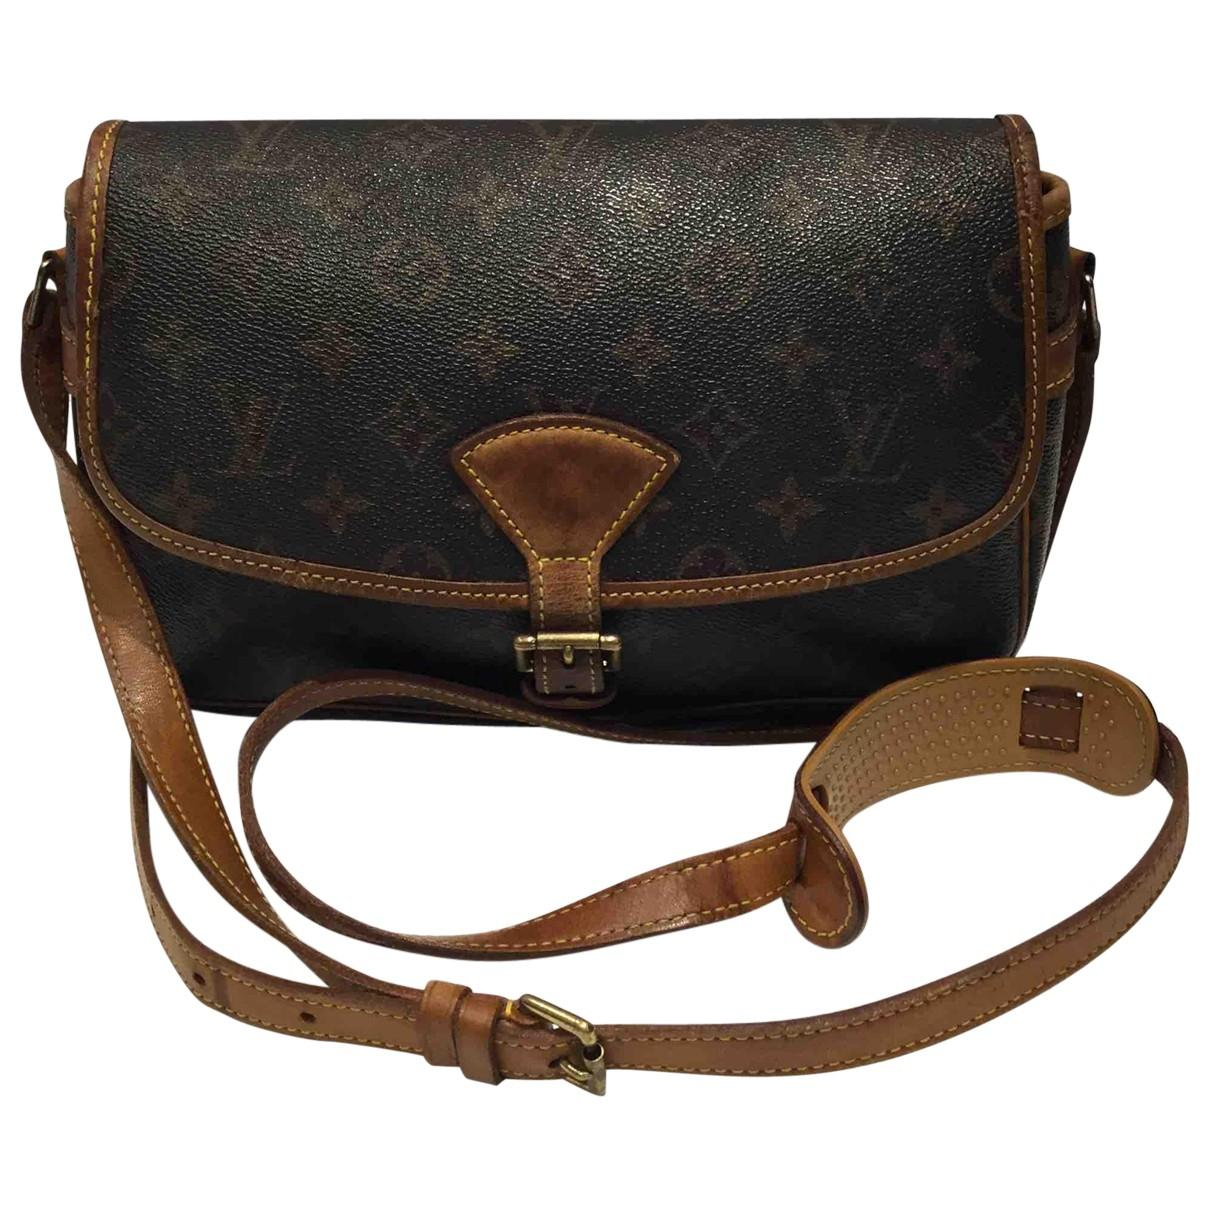 efee5aa1bddf Lyst - Louis Vuitton Pre-owned Sologne Cloth Crossbody Bag in Brown